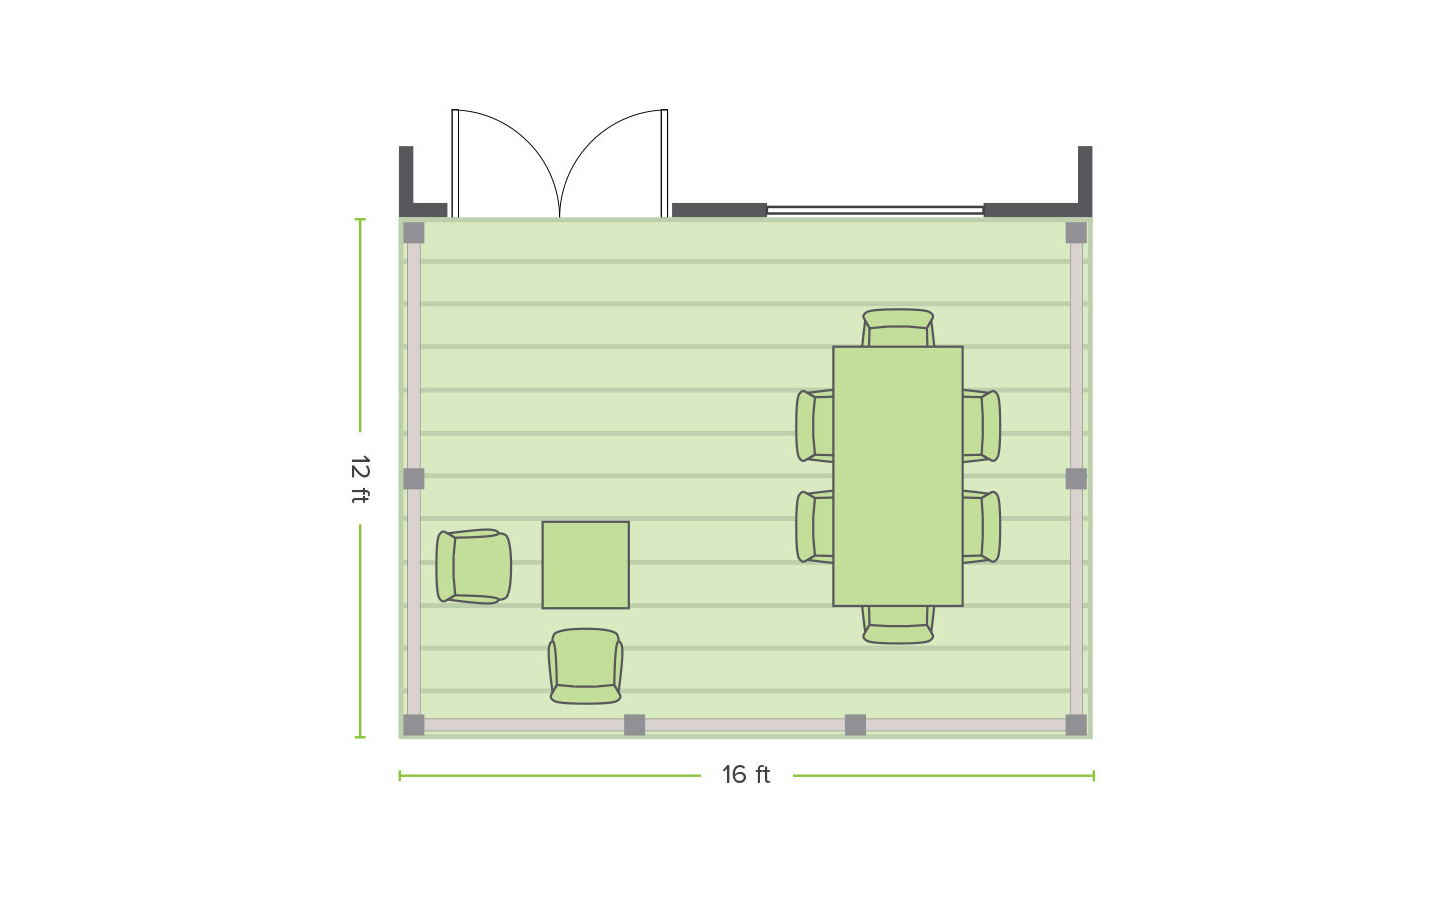 Trex created rectangle deck designs in 5 different sizes. Displayed here is the 12x16ft floorplan.